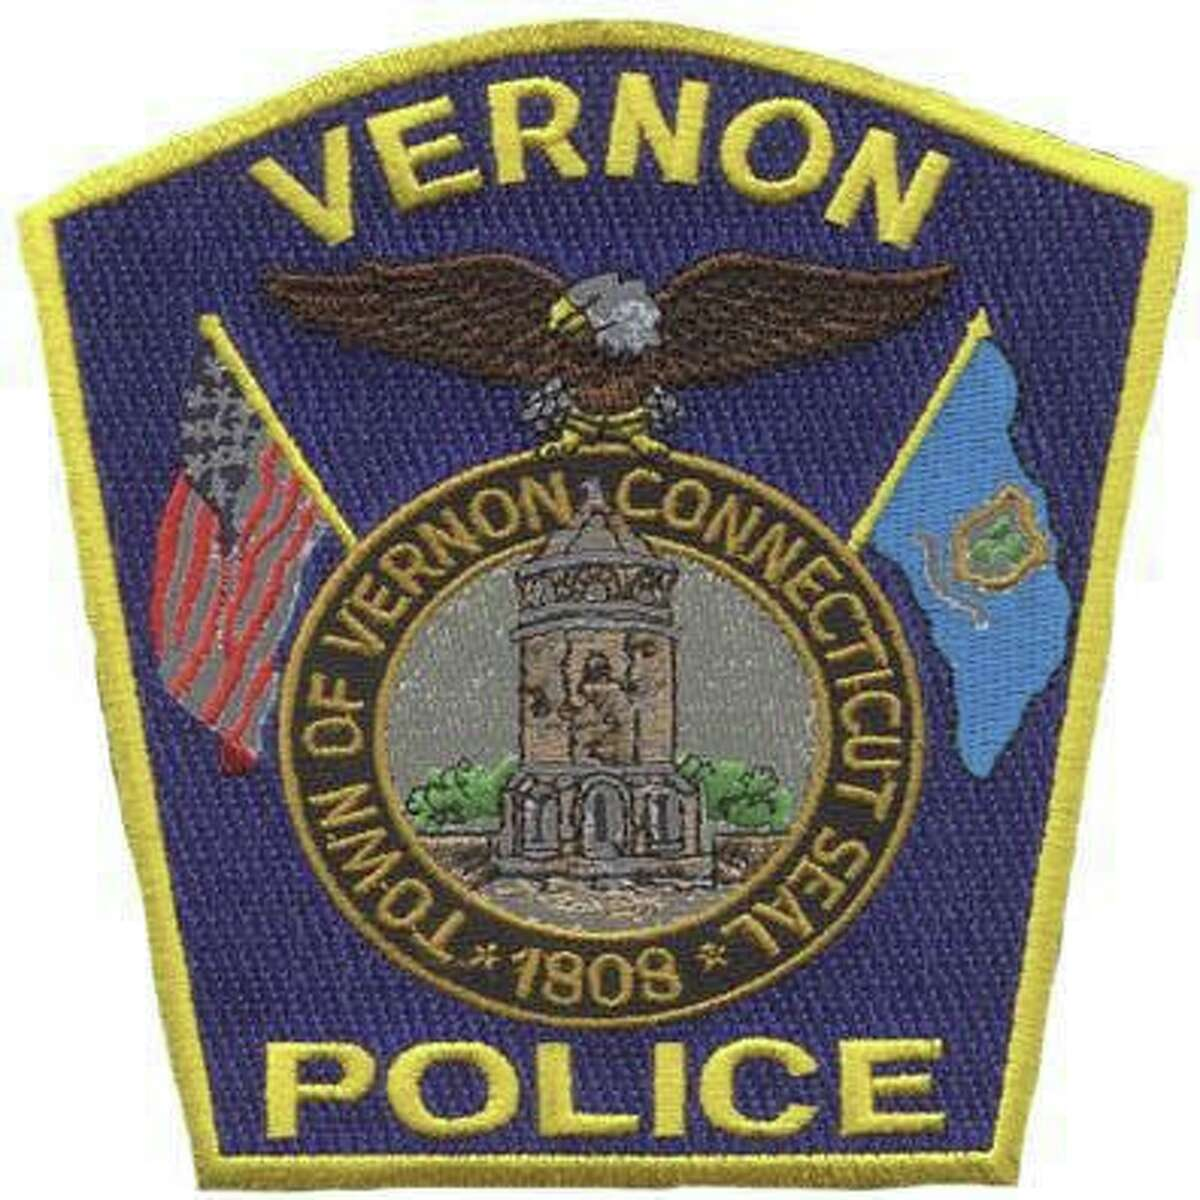 A motorcyclist was killed Friday evening in a crash on Route 83 on Friday, Nov. 27, 2020, Vernon police said. The crash happened in front of 404 Talcottville Road.